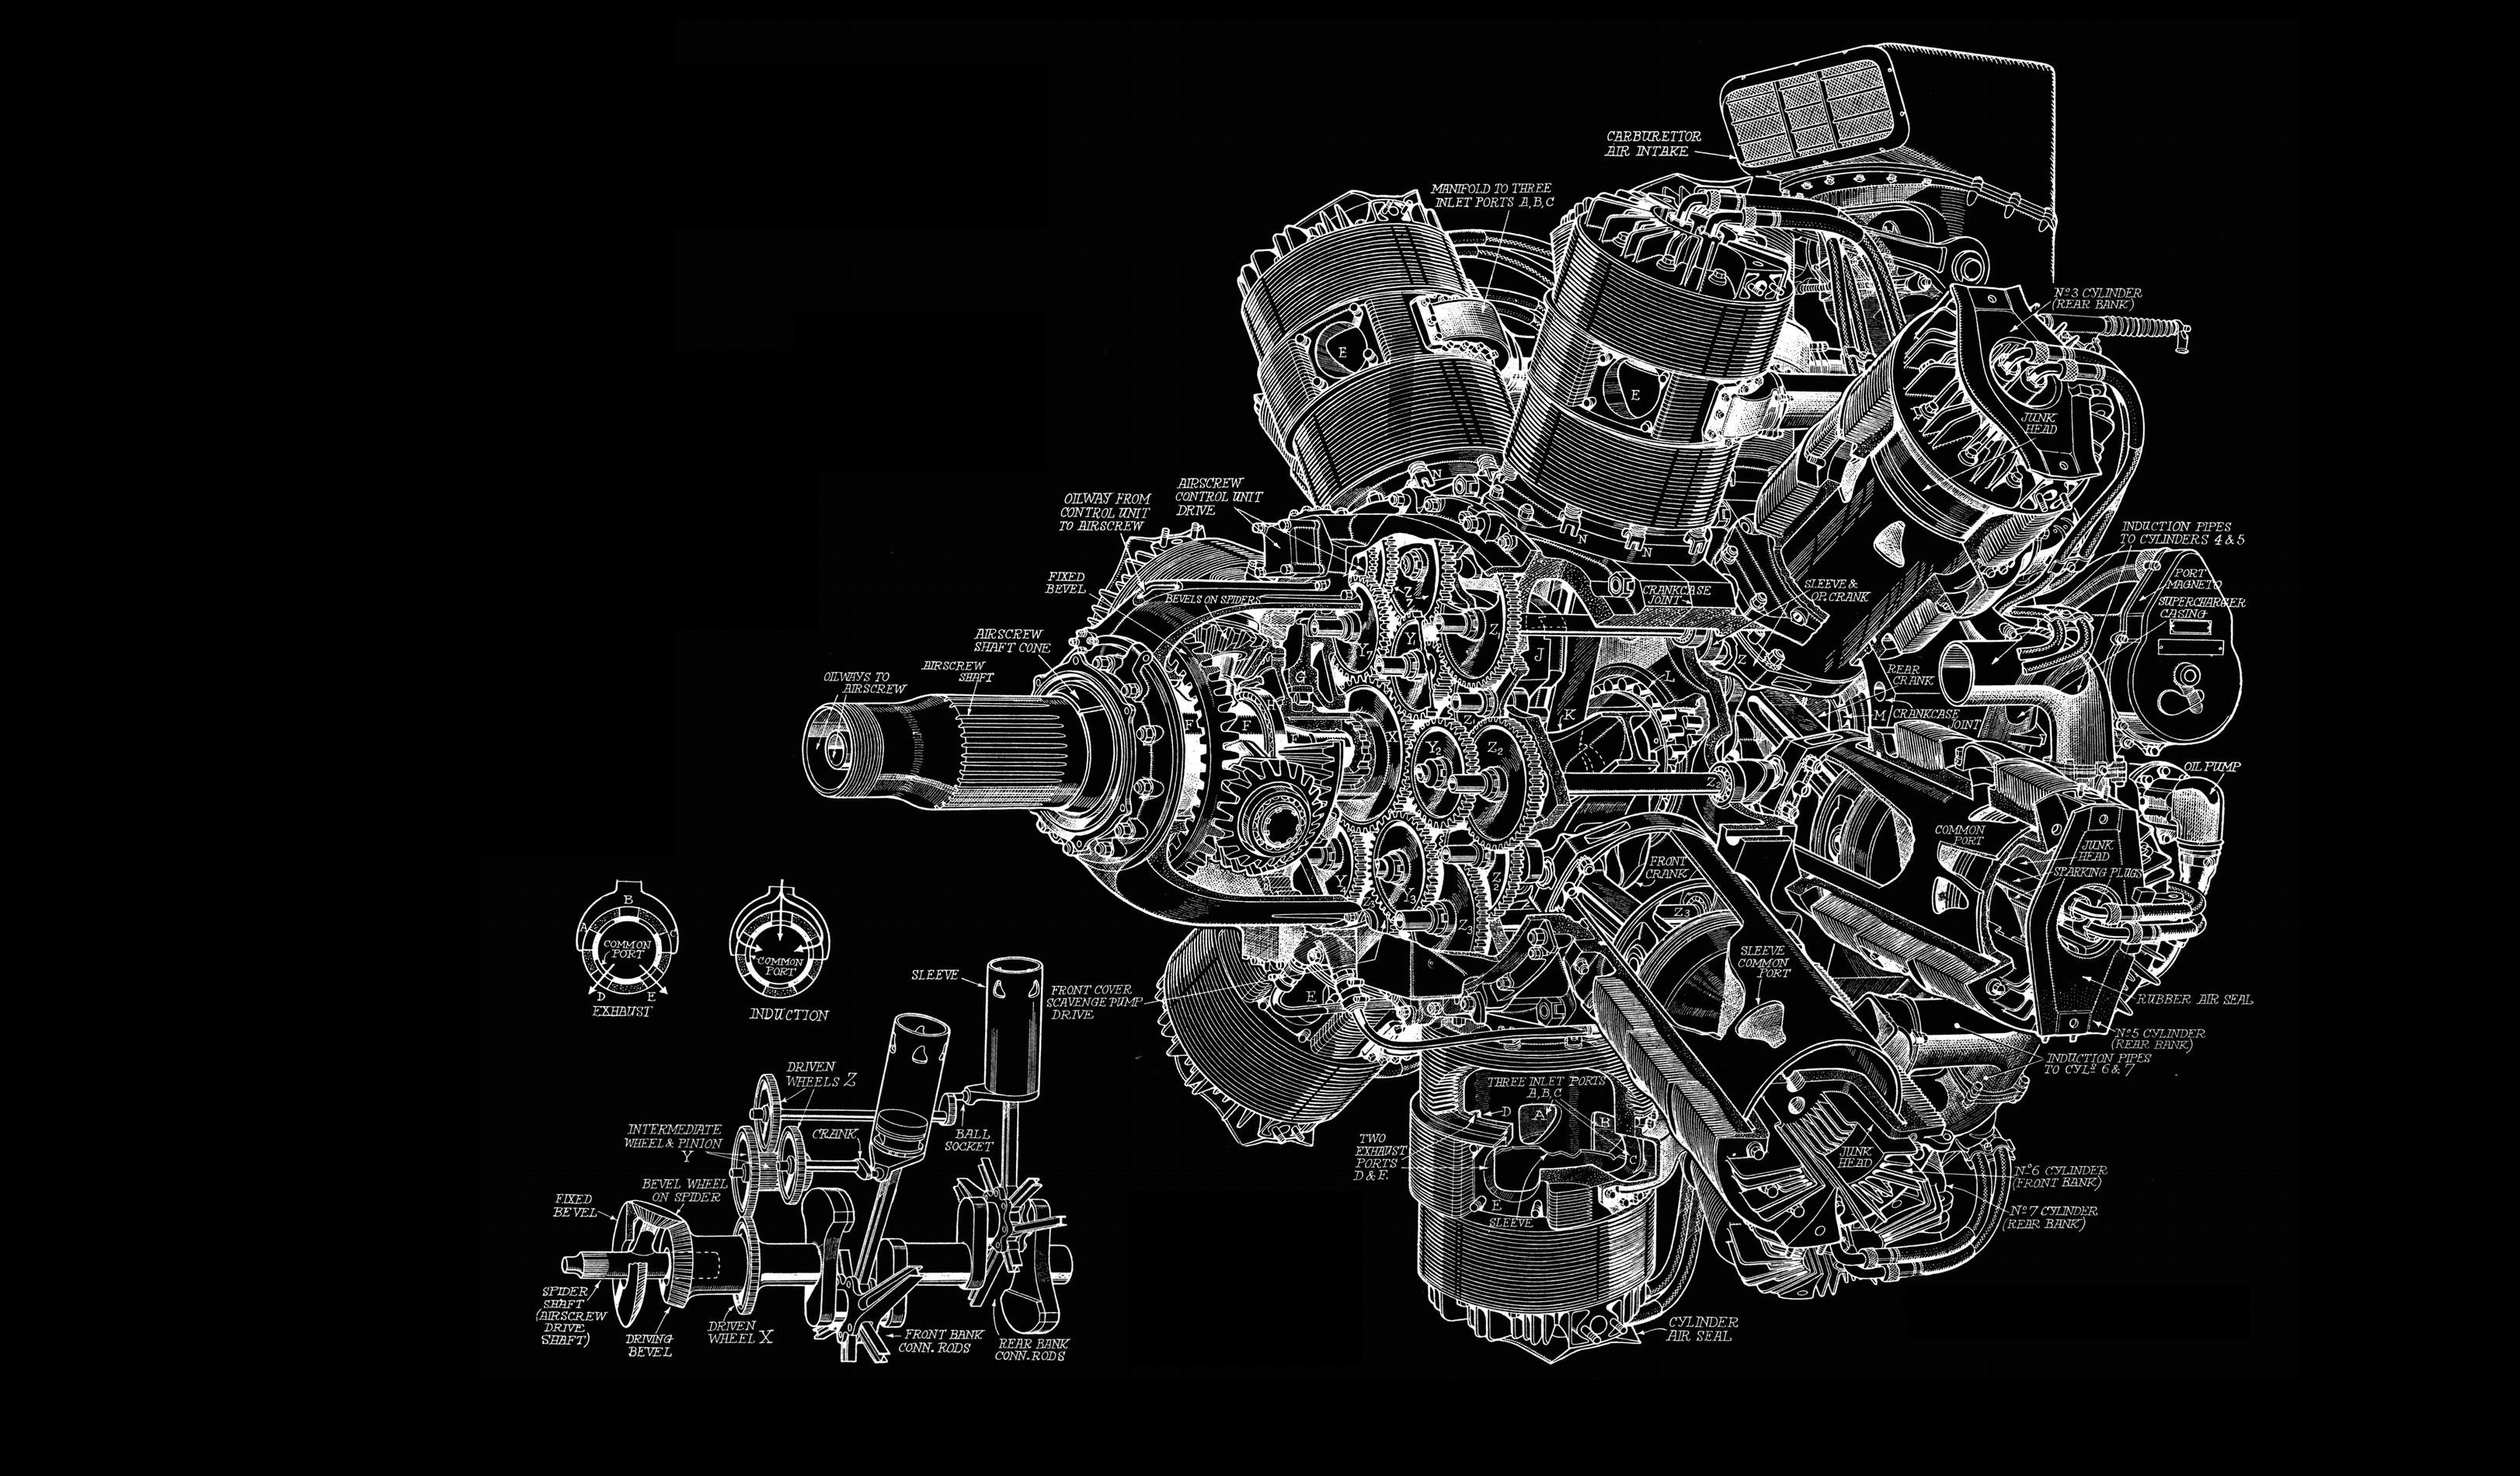 small resolution of 3244x1900 general 3244x1900 engines schematic airplane sketches engineering turbine gears